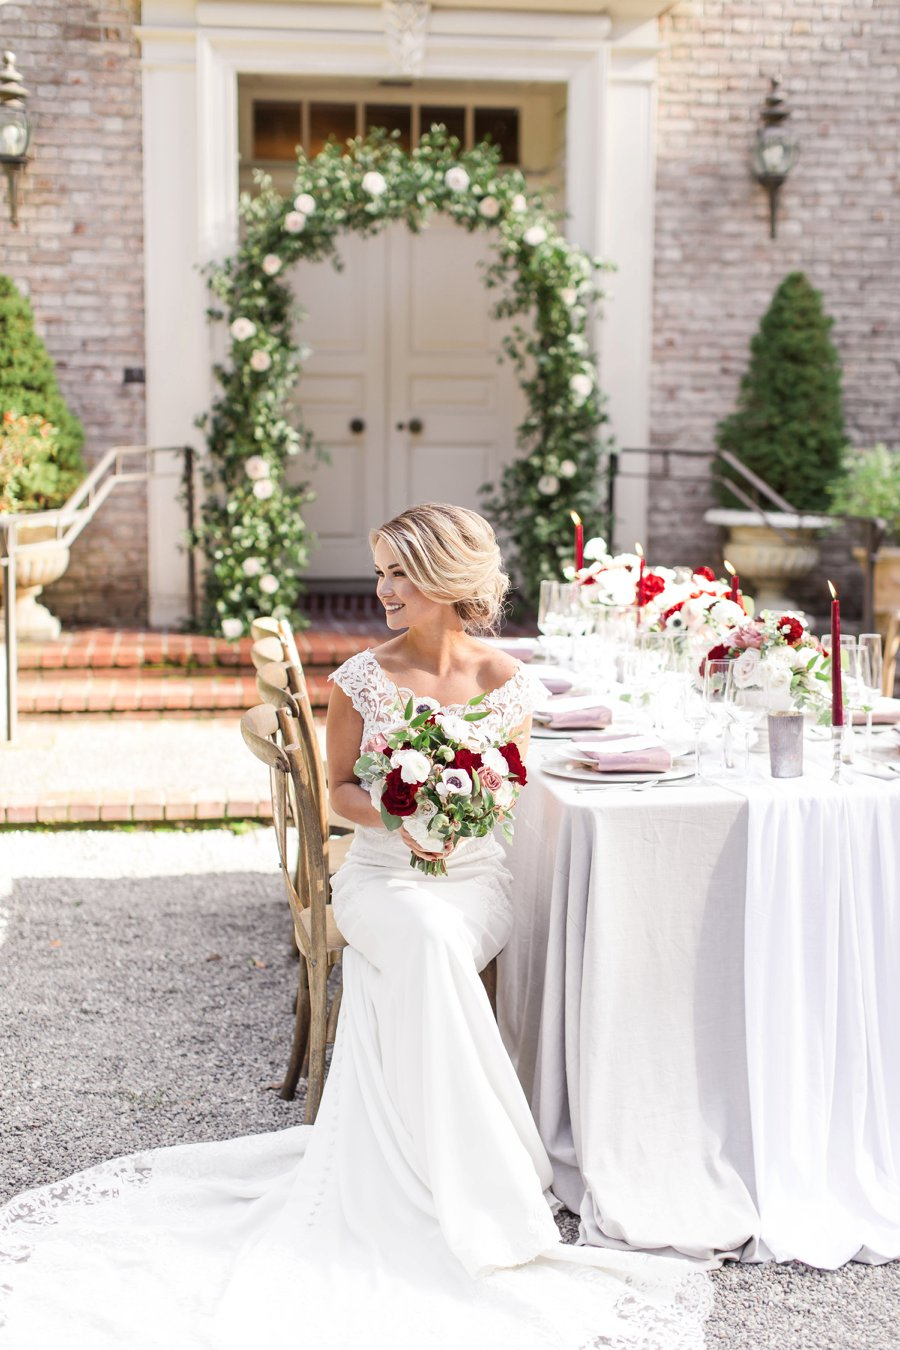 Romantic Pink & Red Elegant Garden Wedding Ideas